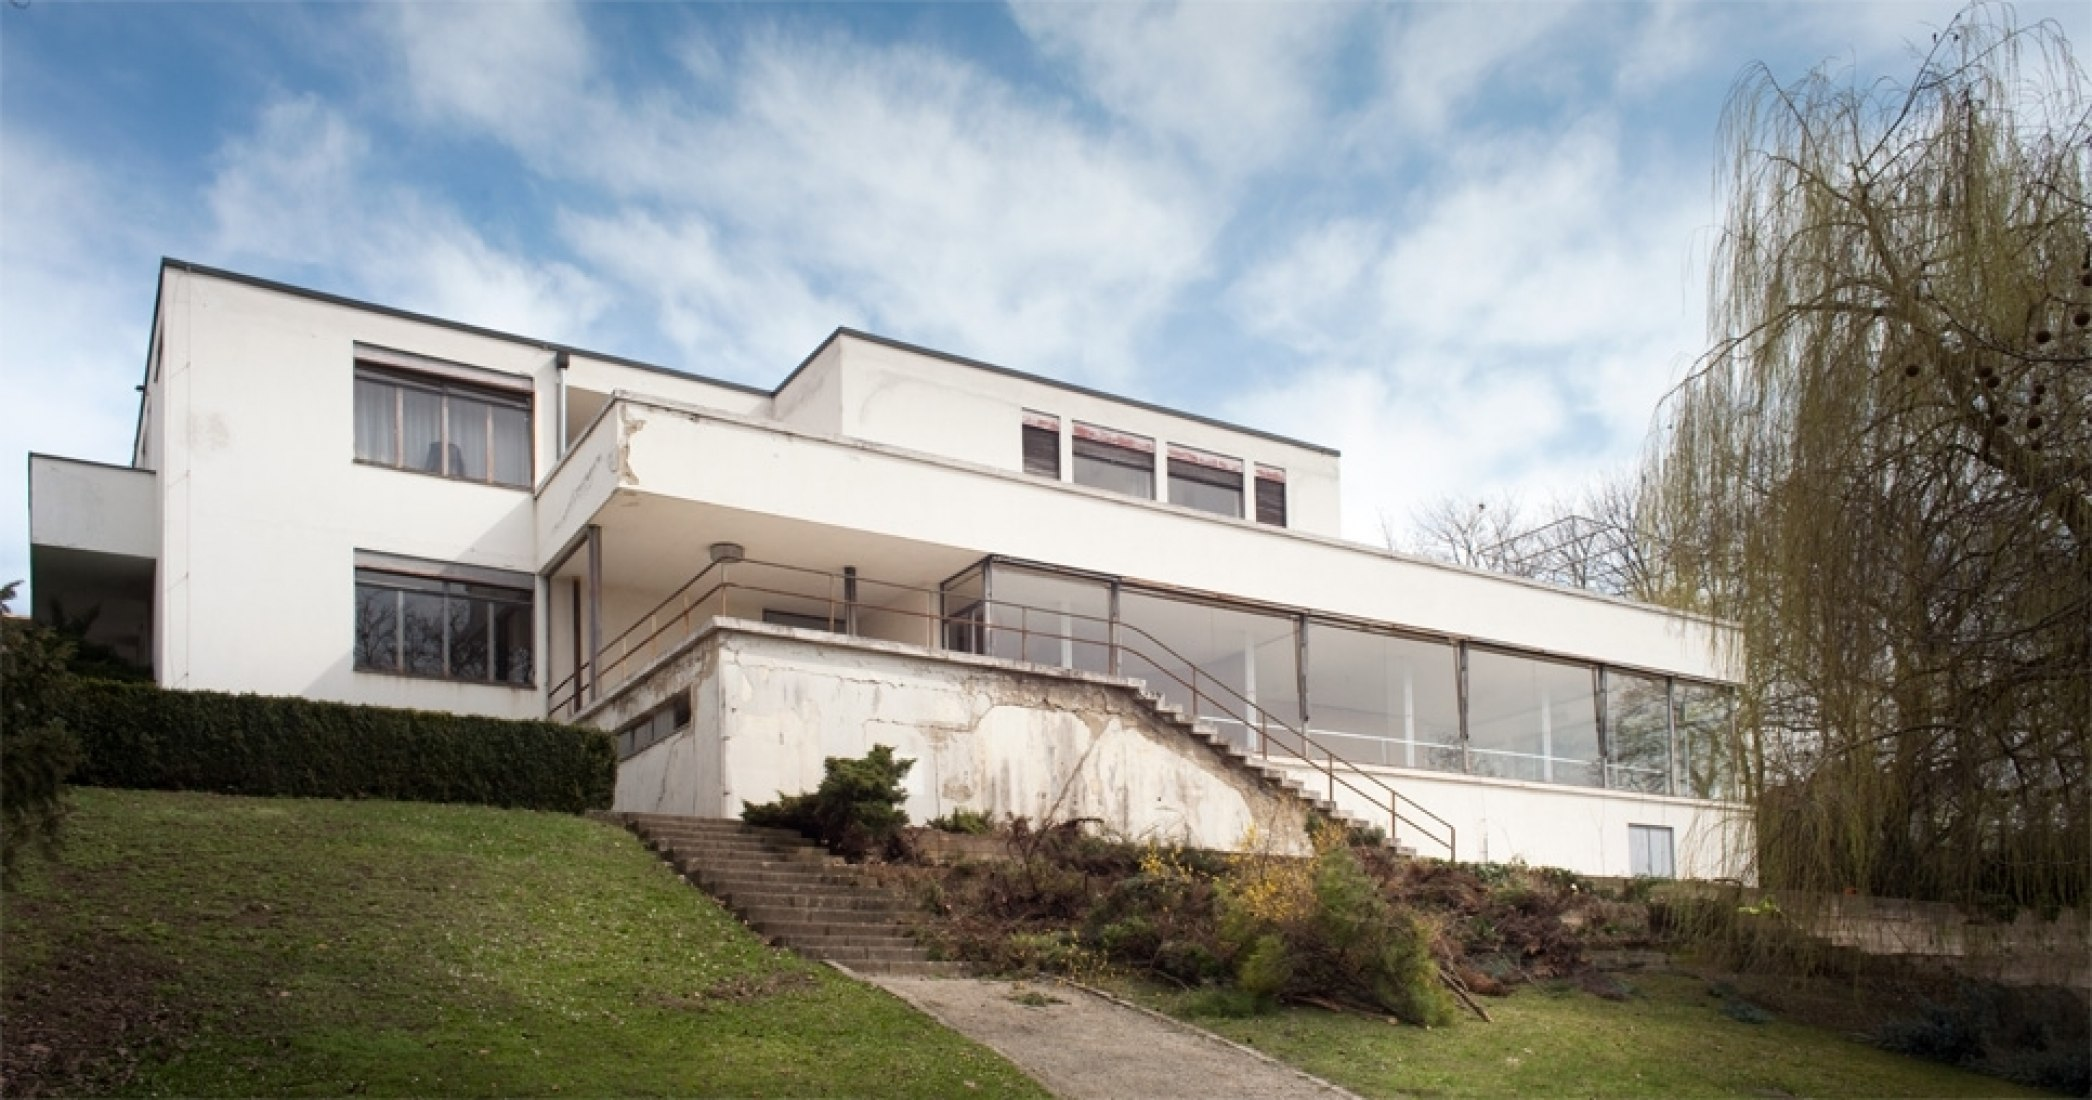 Villa Tugendhat Villa Tugendhat Reopen Again For Public From Thursday 6 03 2012